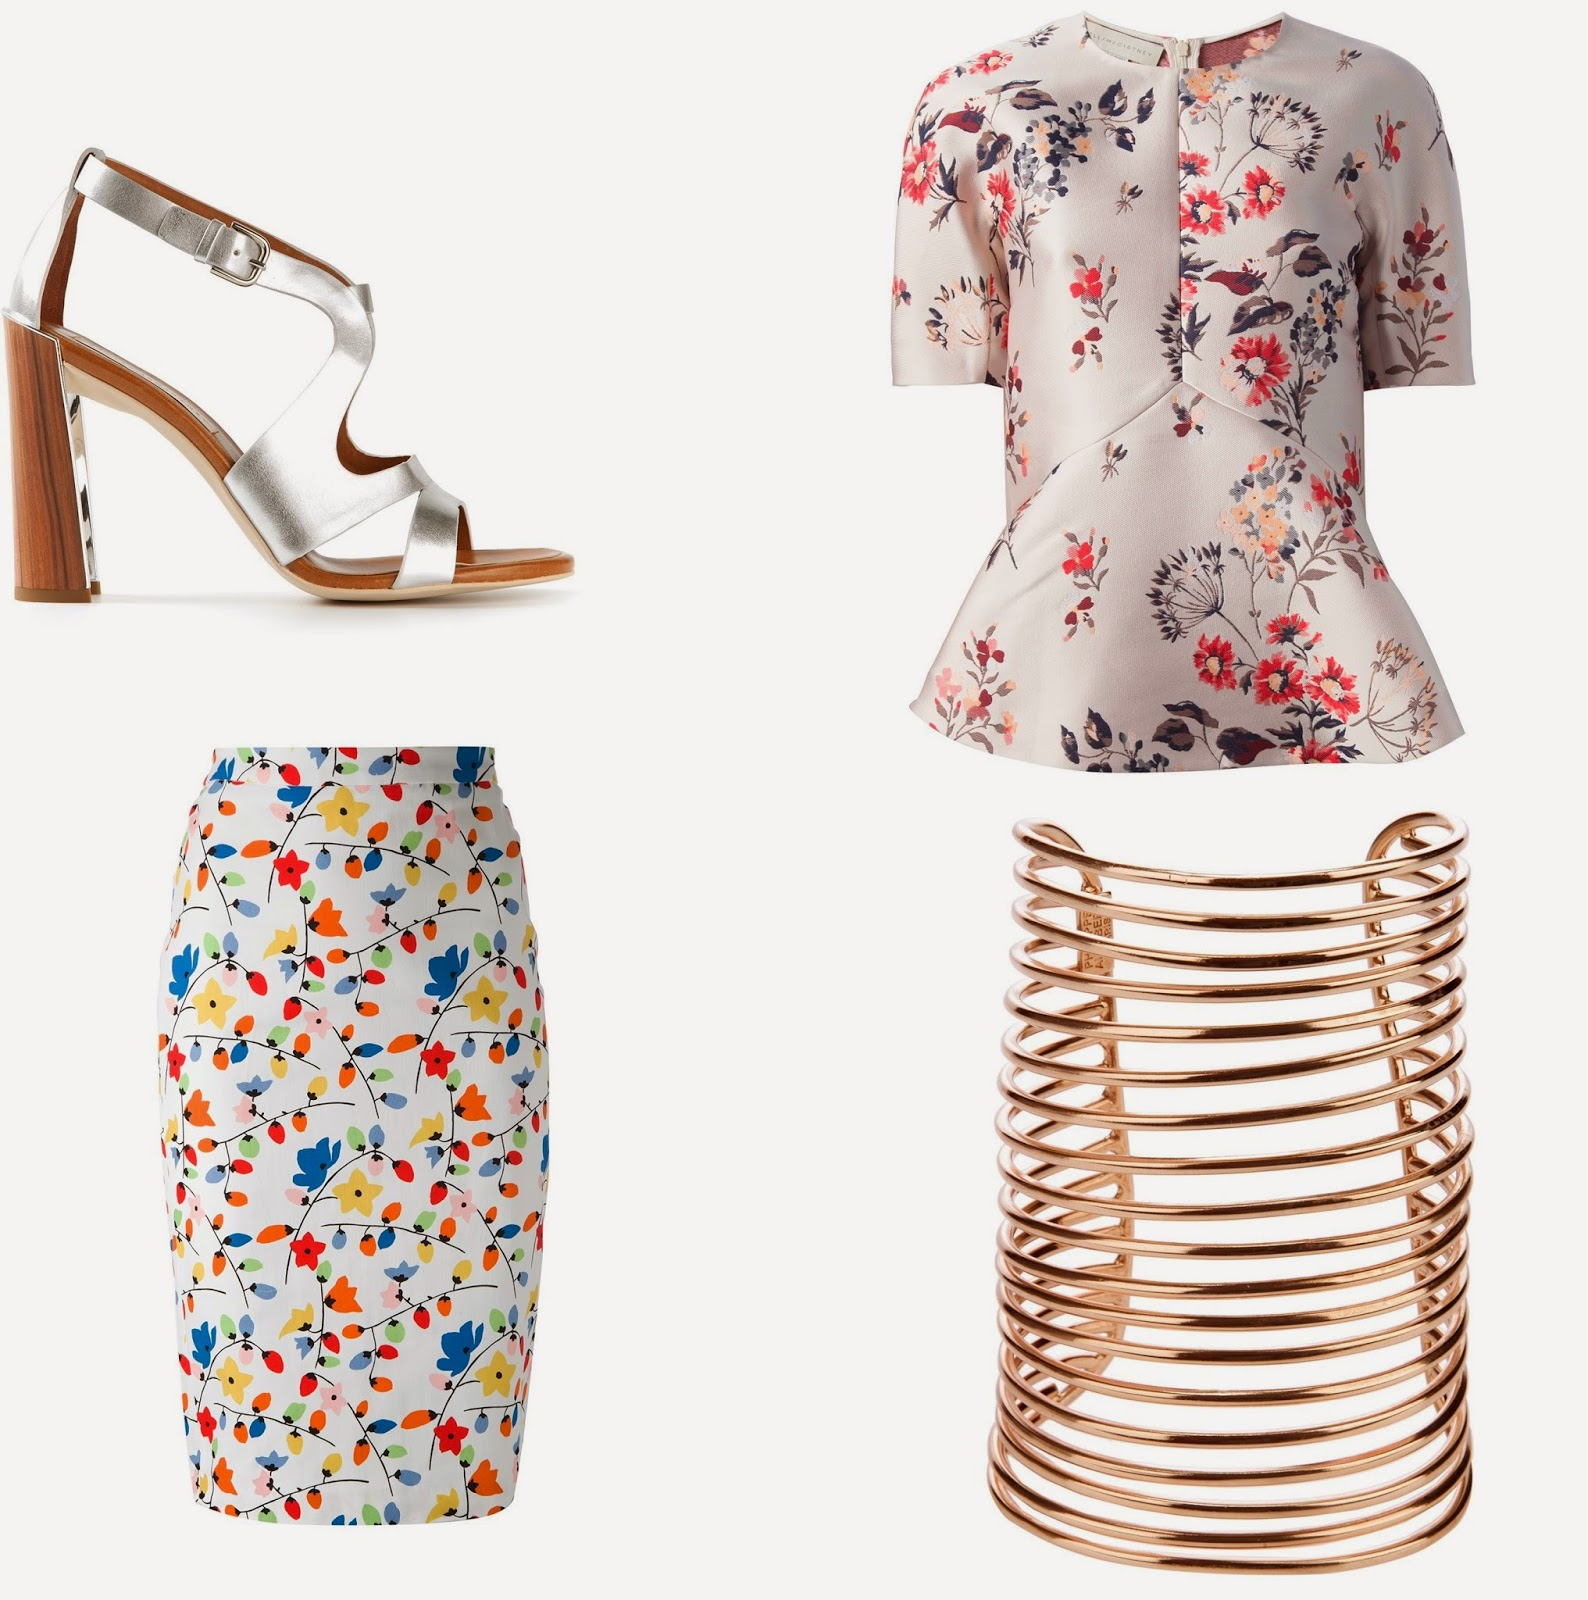 Stella McCartney Lily SHoes and Peplum Top. Moschino Floral Skirt, Pjilippe Audibert Cuff